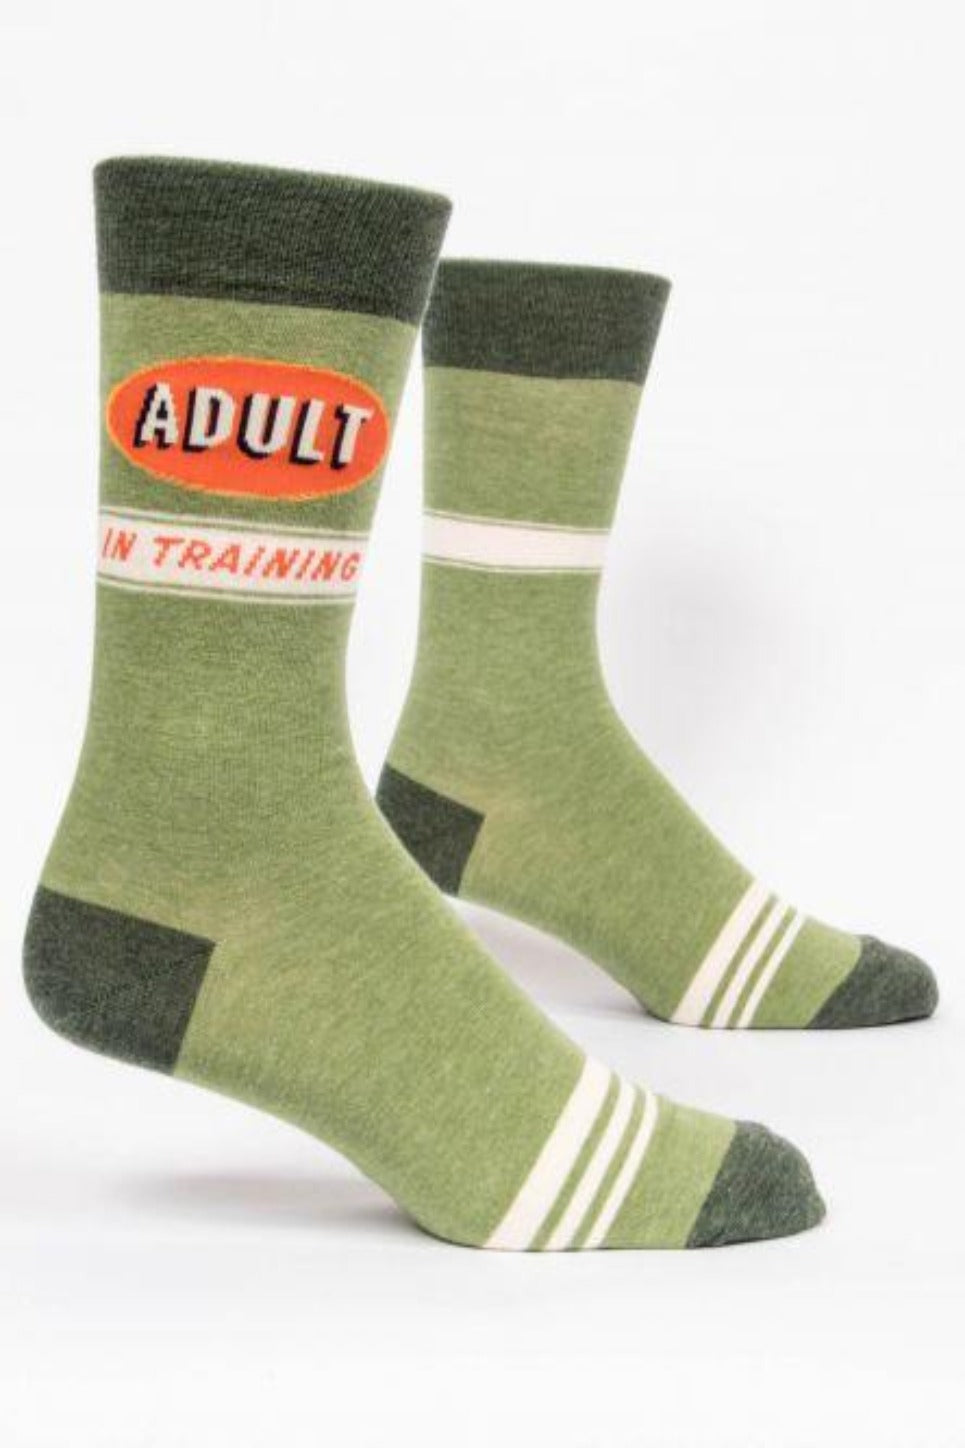 Adult in Training Men's Socks